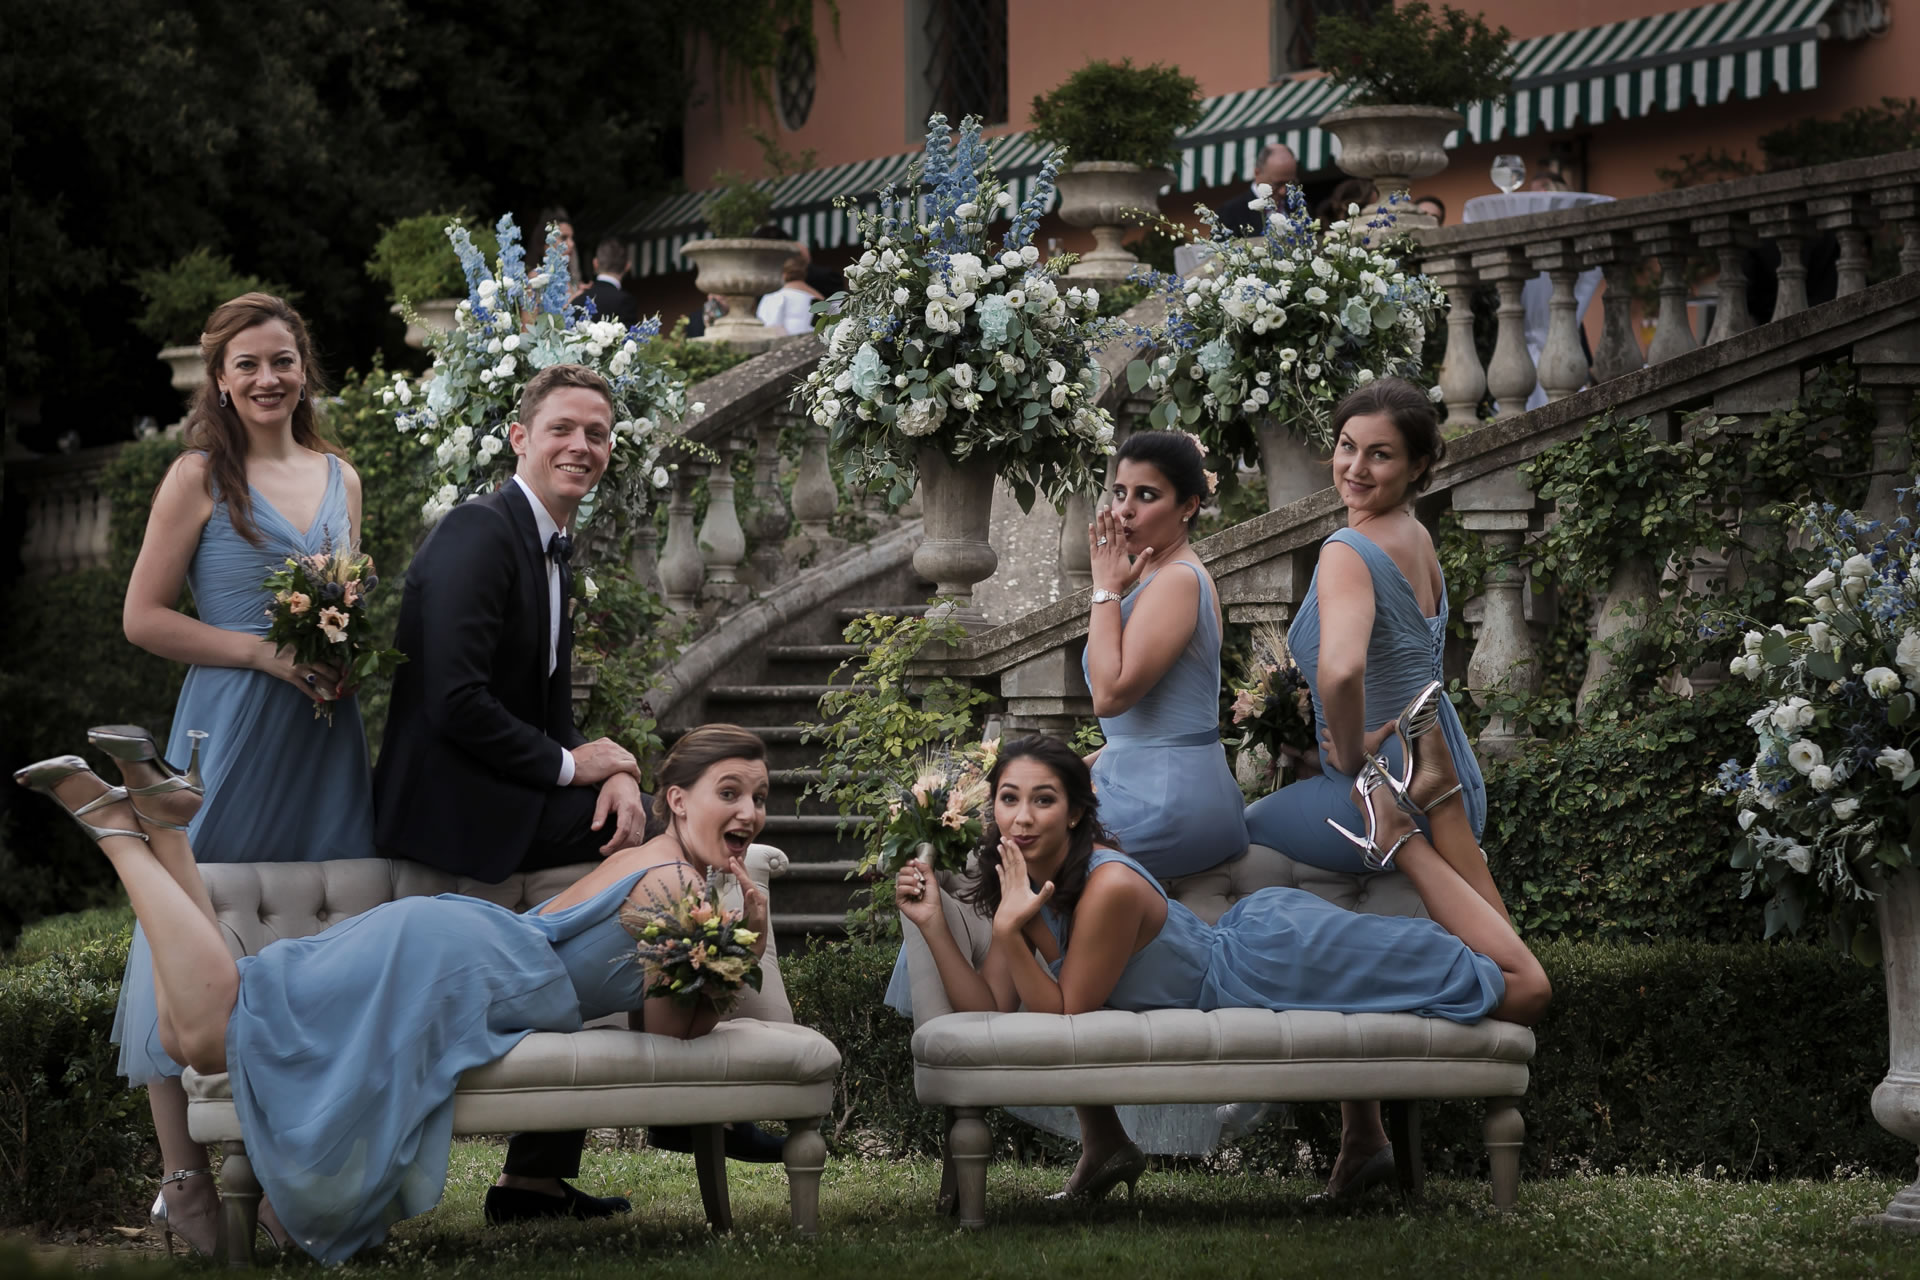 Bridesmaids - 39 :: Amazing wedding day at Il Borro :: Luxury wedding photography - 38 :: Bridesmaids - 39